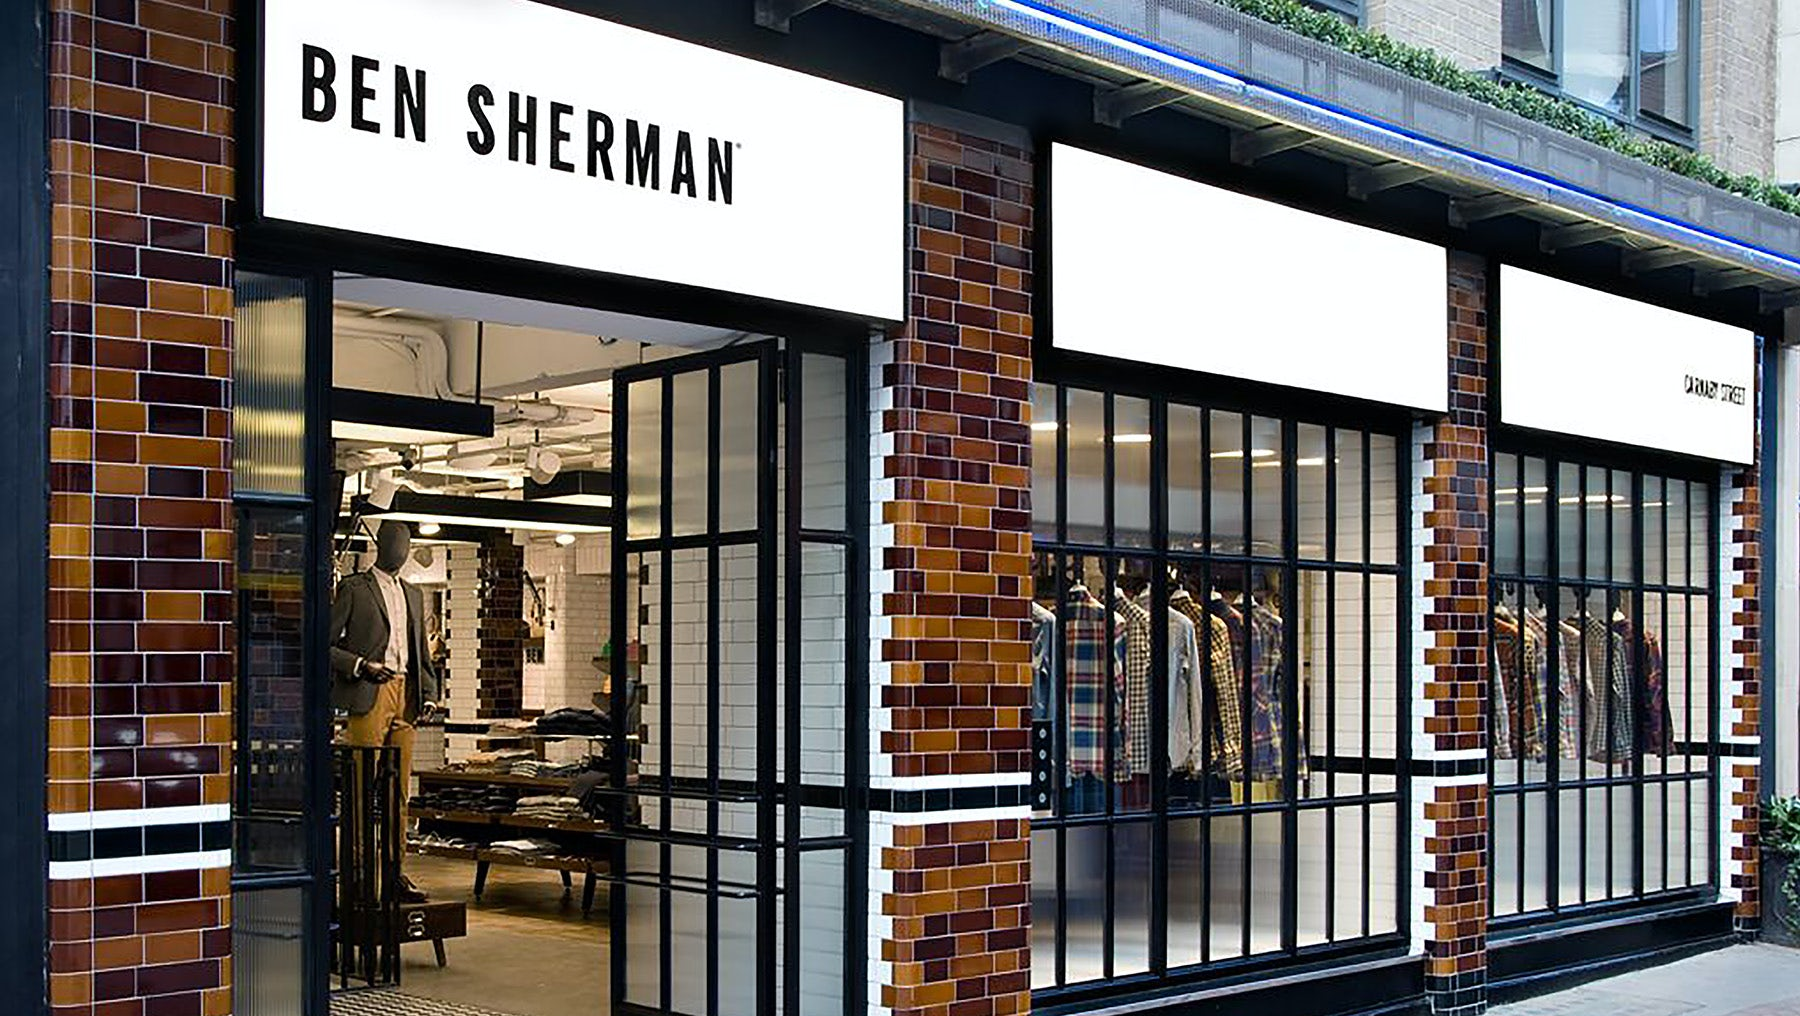 Ben Sherman store | Source: Courtesy